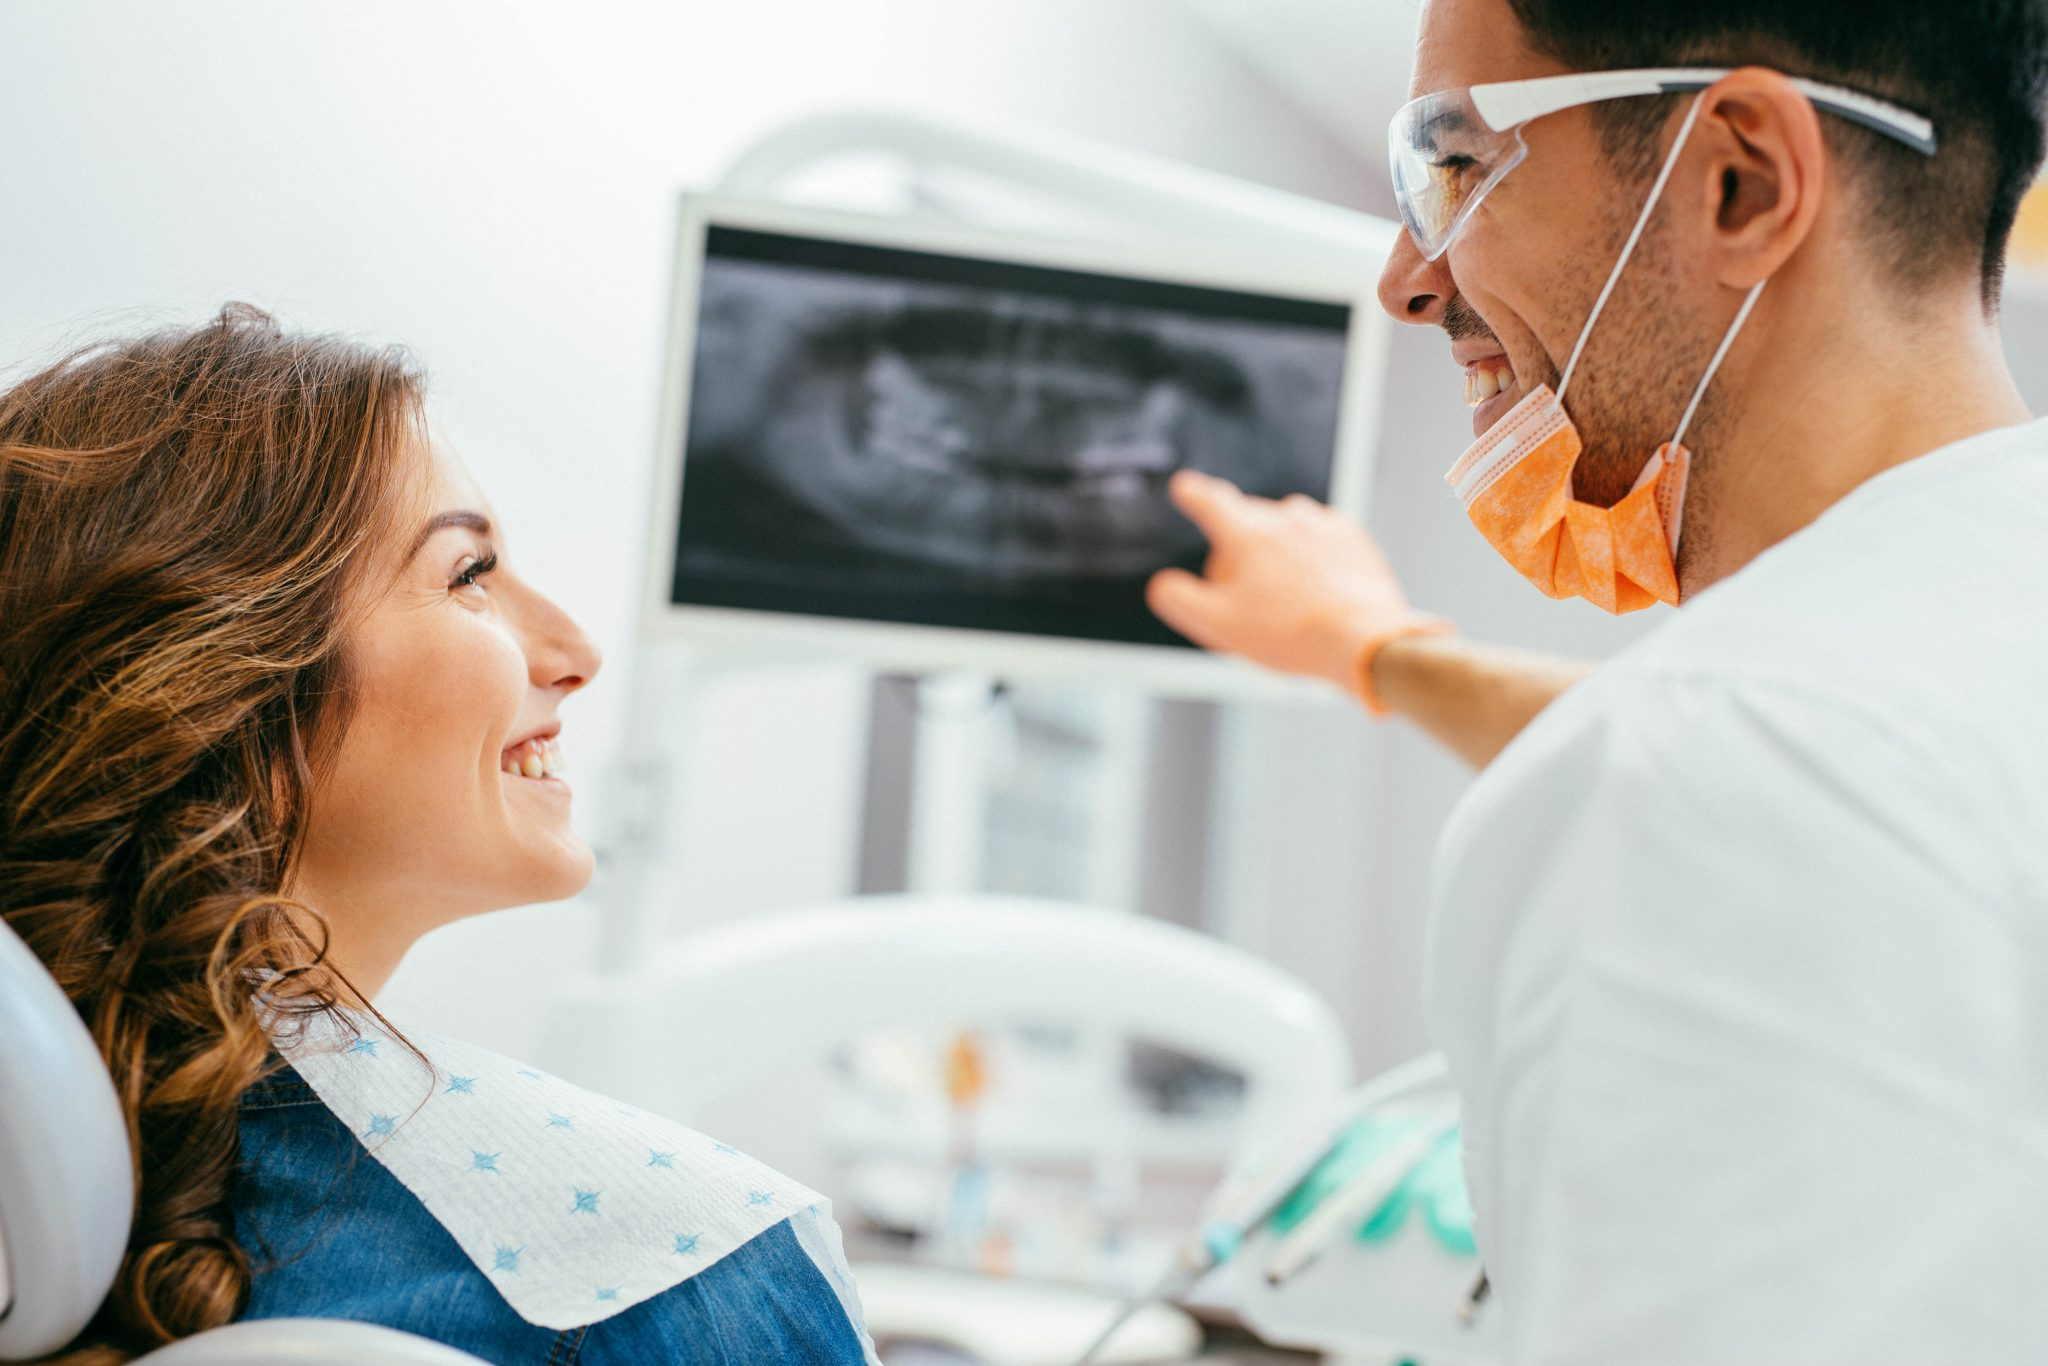 male-dentist-in-dentist-office-presenting-xray-picture-on-monitor-to-female-smiling-dental-patient